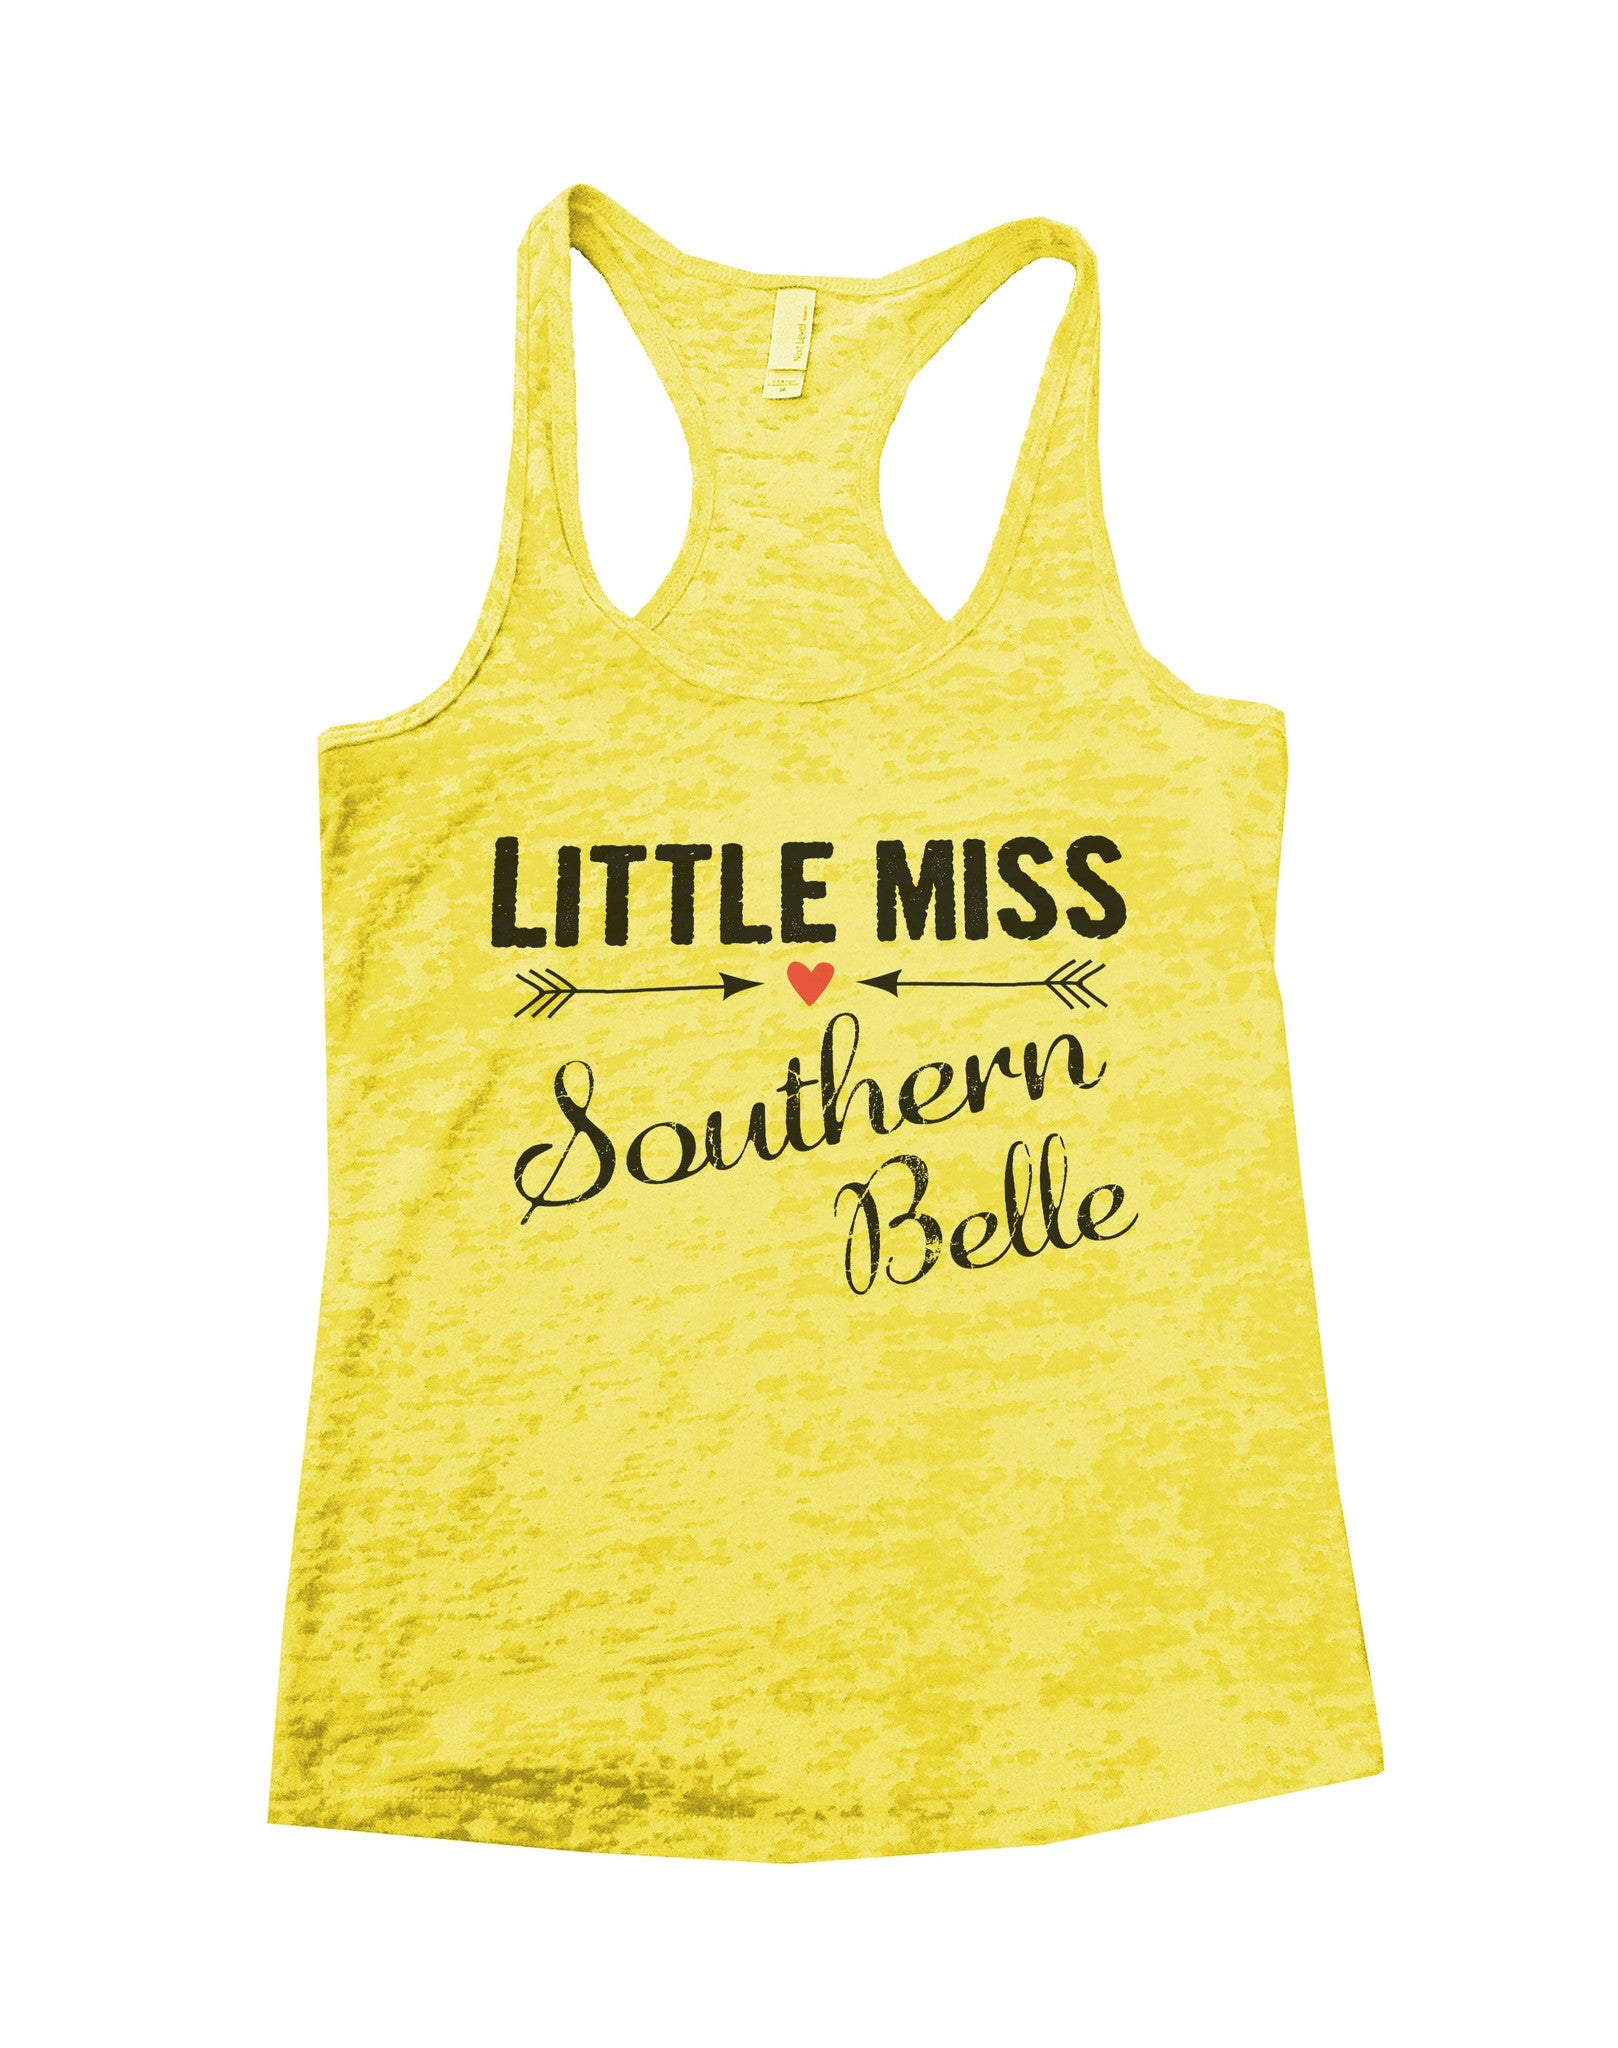 Little Miss Southern Belle Burnout Tank Top By BurnoutTankTops.com - 786 - Funny Shirts Tank Tops Burnouts and Triblends  - 6